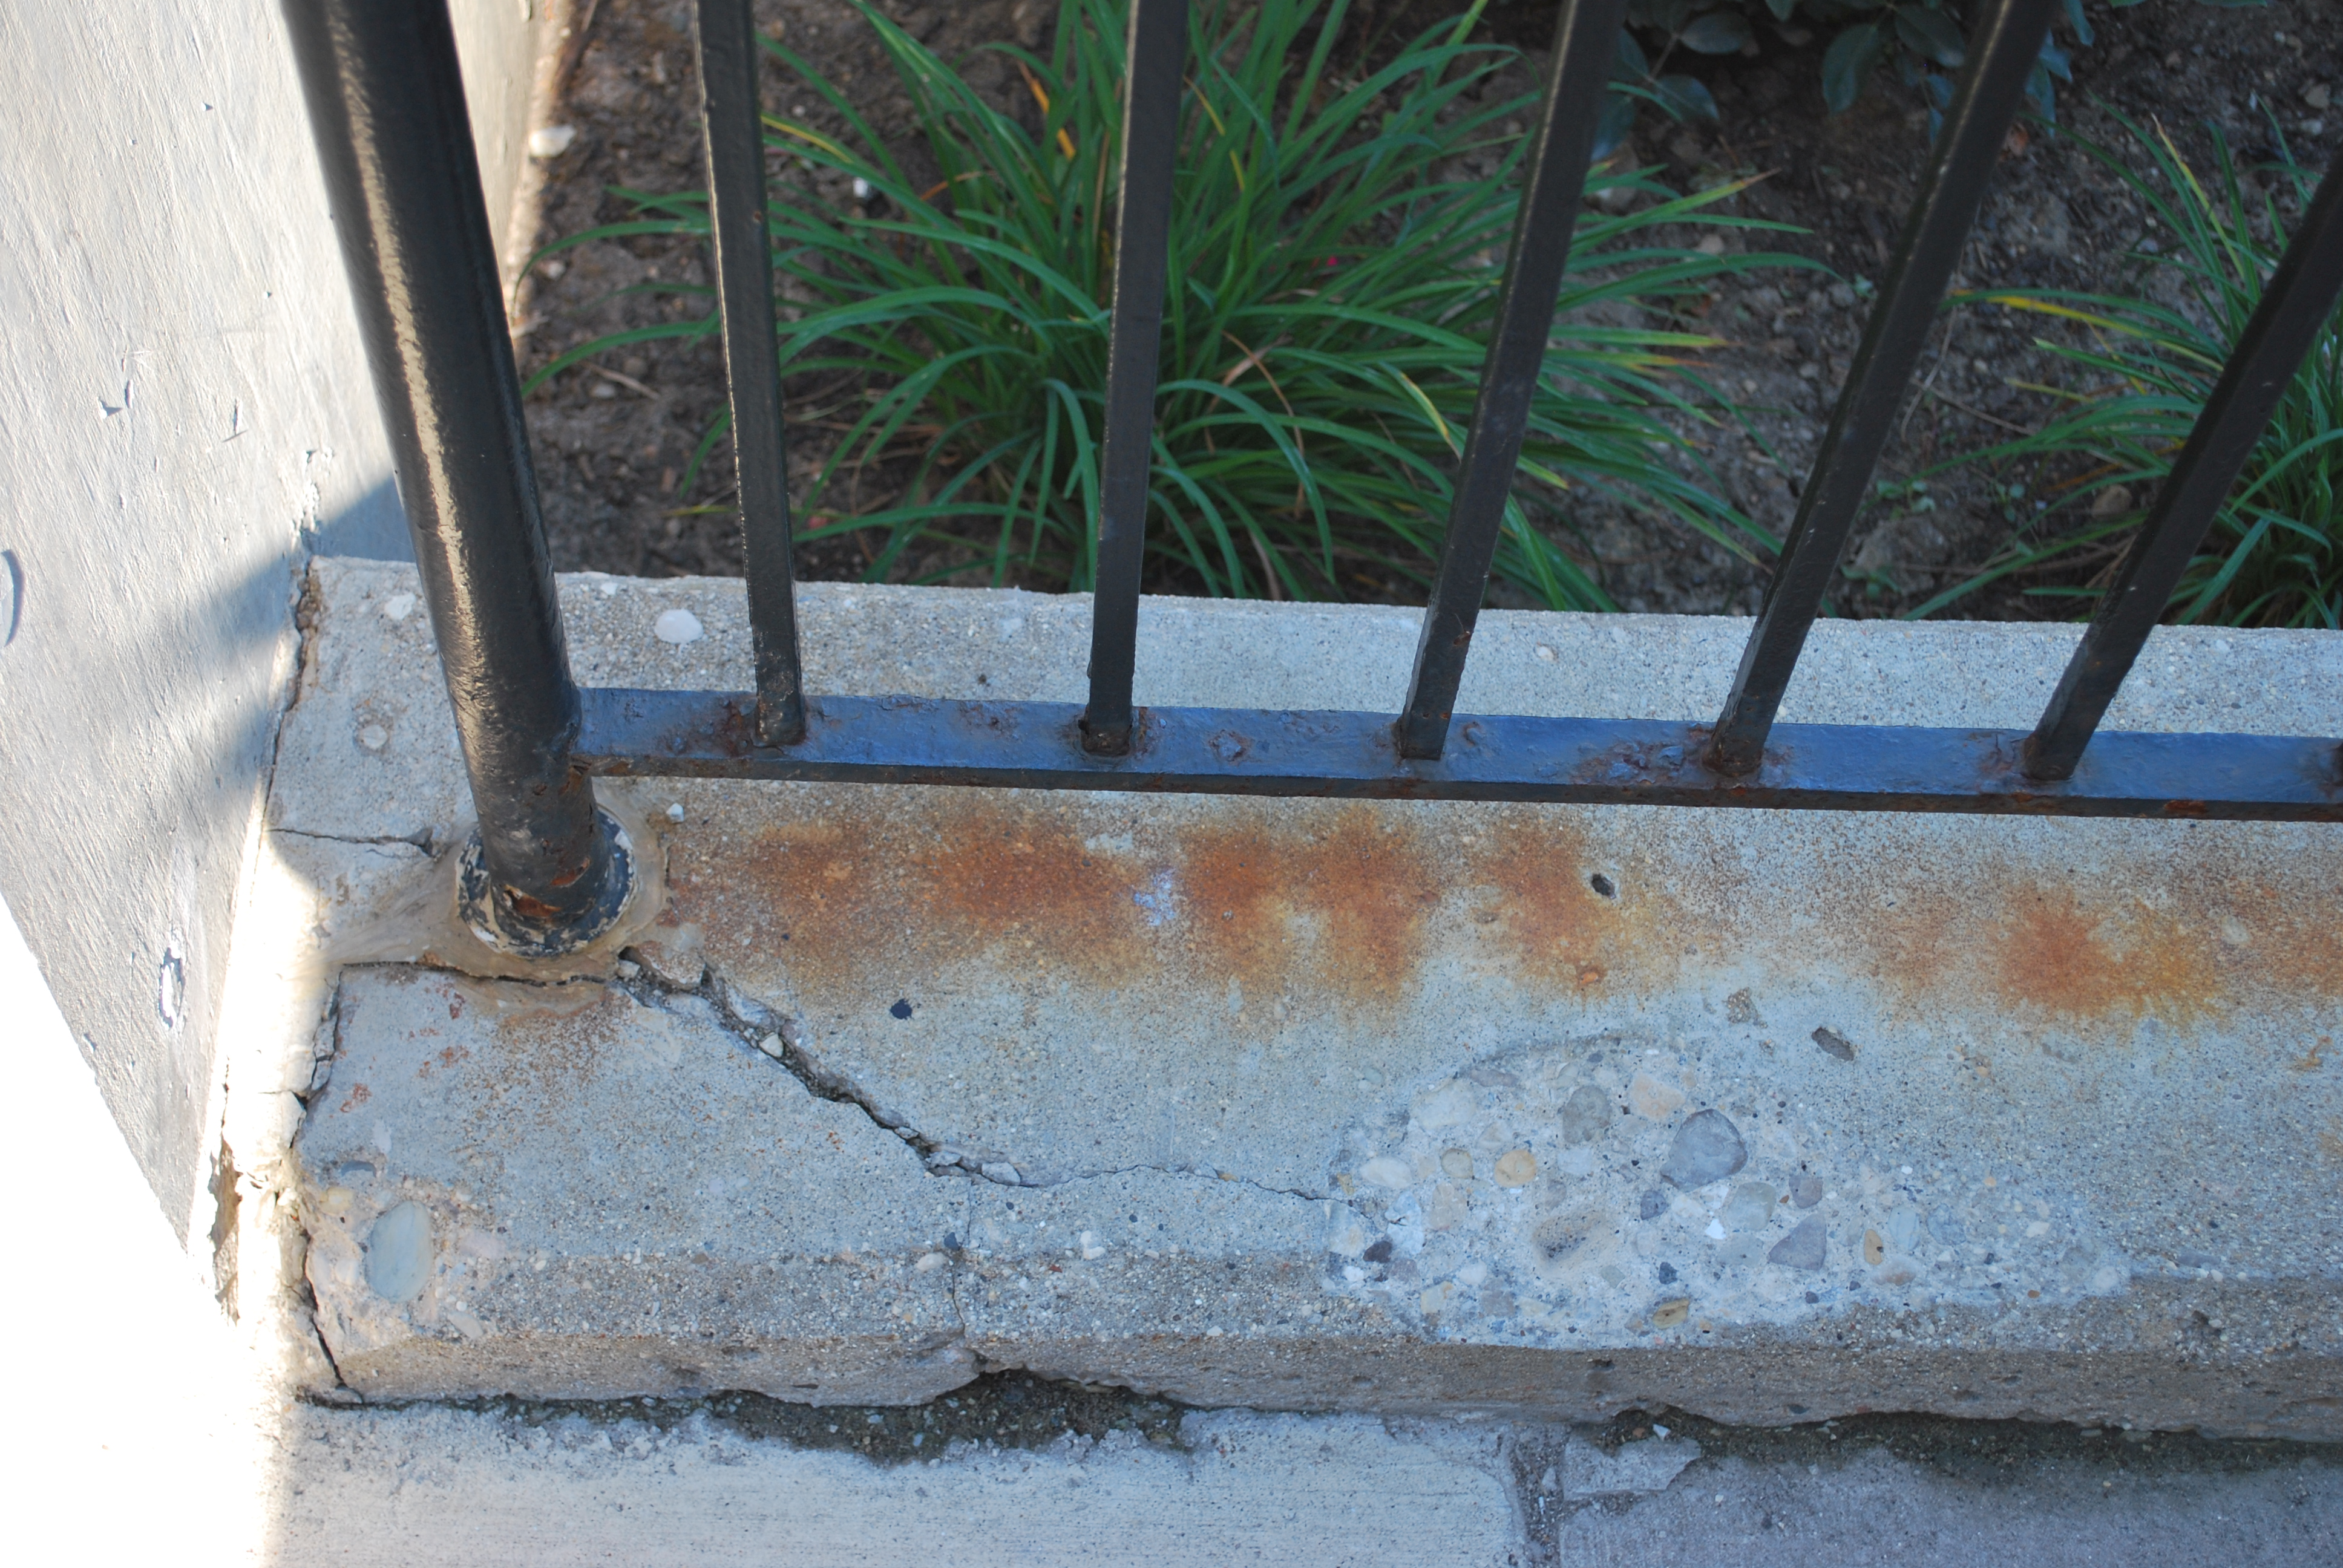 Railings have been compromised in the crumbling concrete retaining walls.